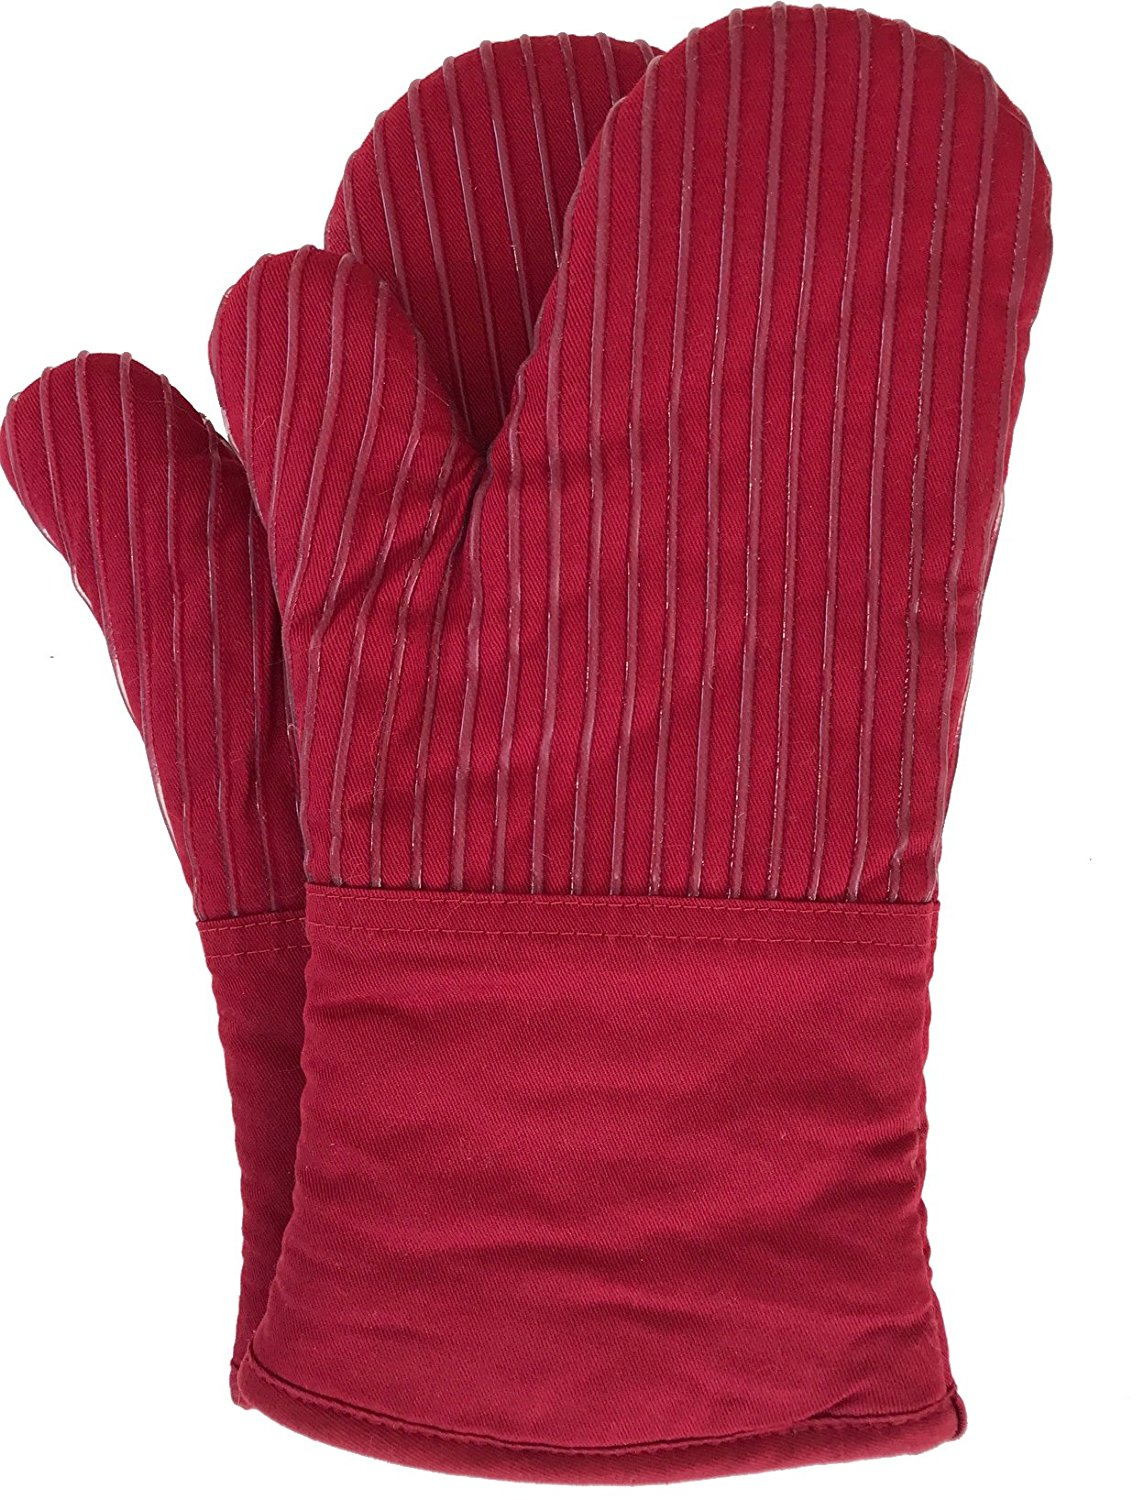 Big Red House Oven Mitts